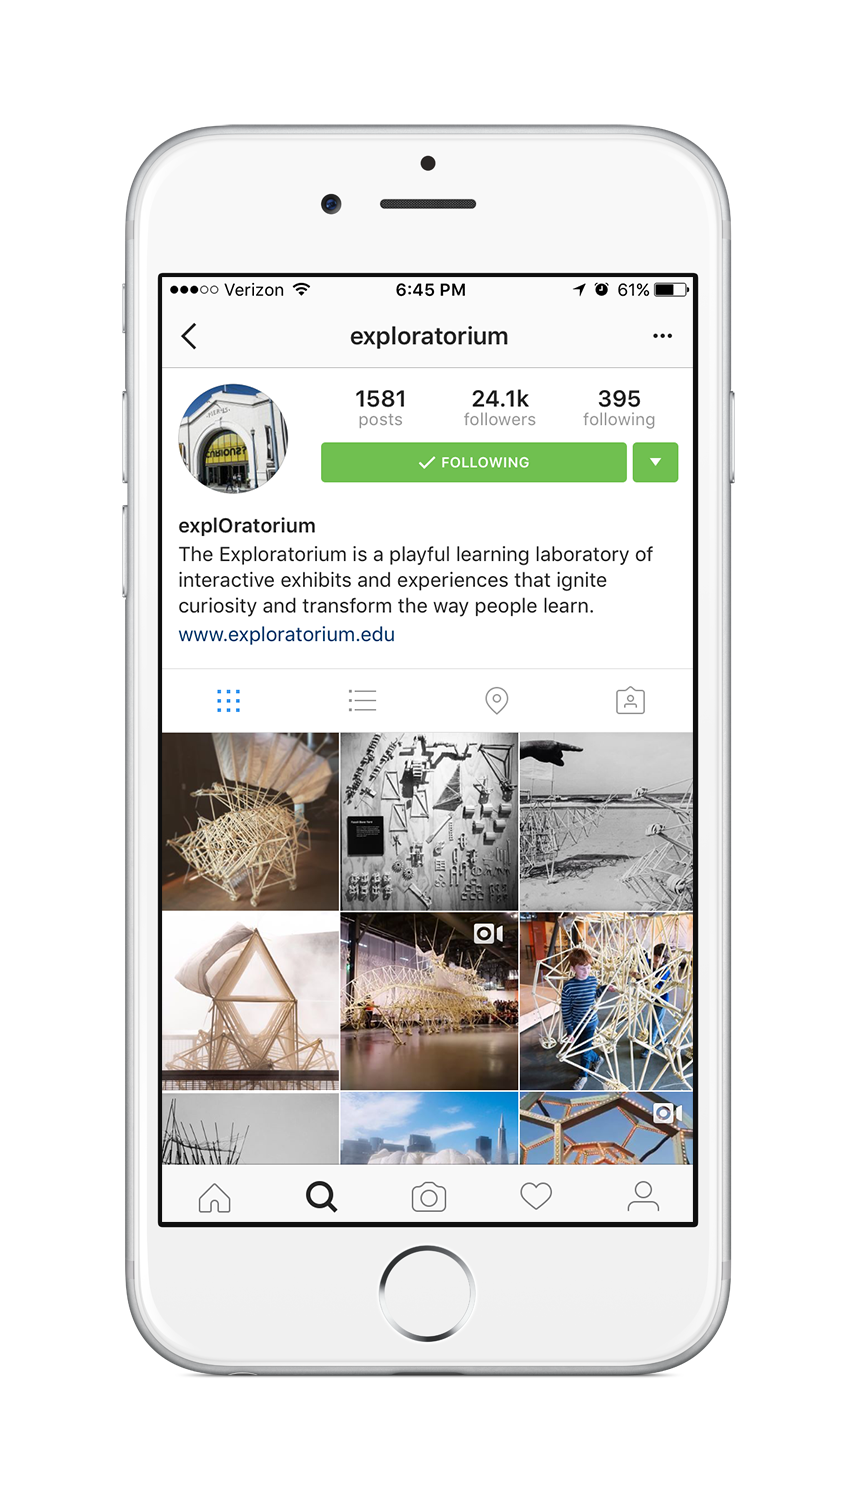 Strandbeest at the San Francisco Exploratorium   The social media campaign I developed was executed by every institution that hosted the Strandbeest exhibition: The Peabody Essex Museum, The San Francisco Exploratorium, and Miami Art Basel.